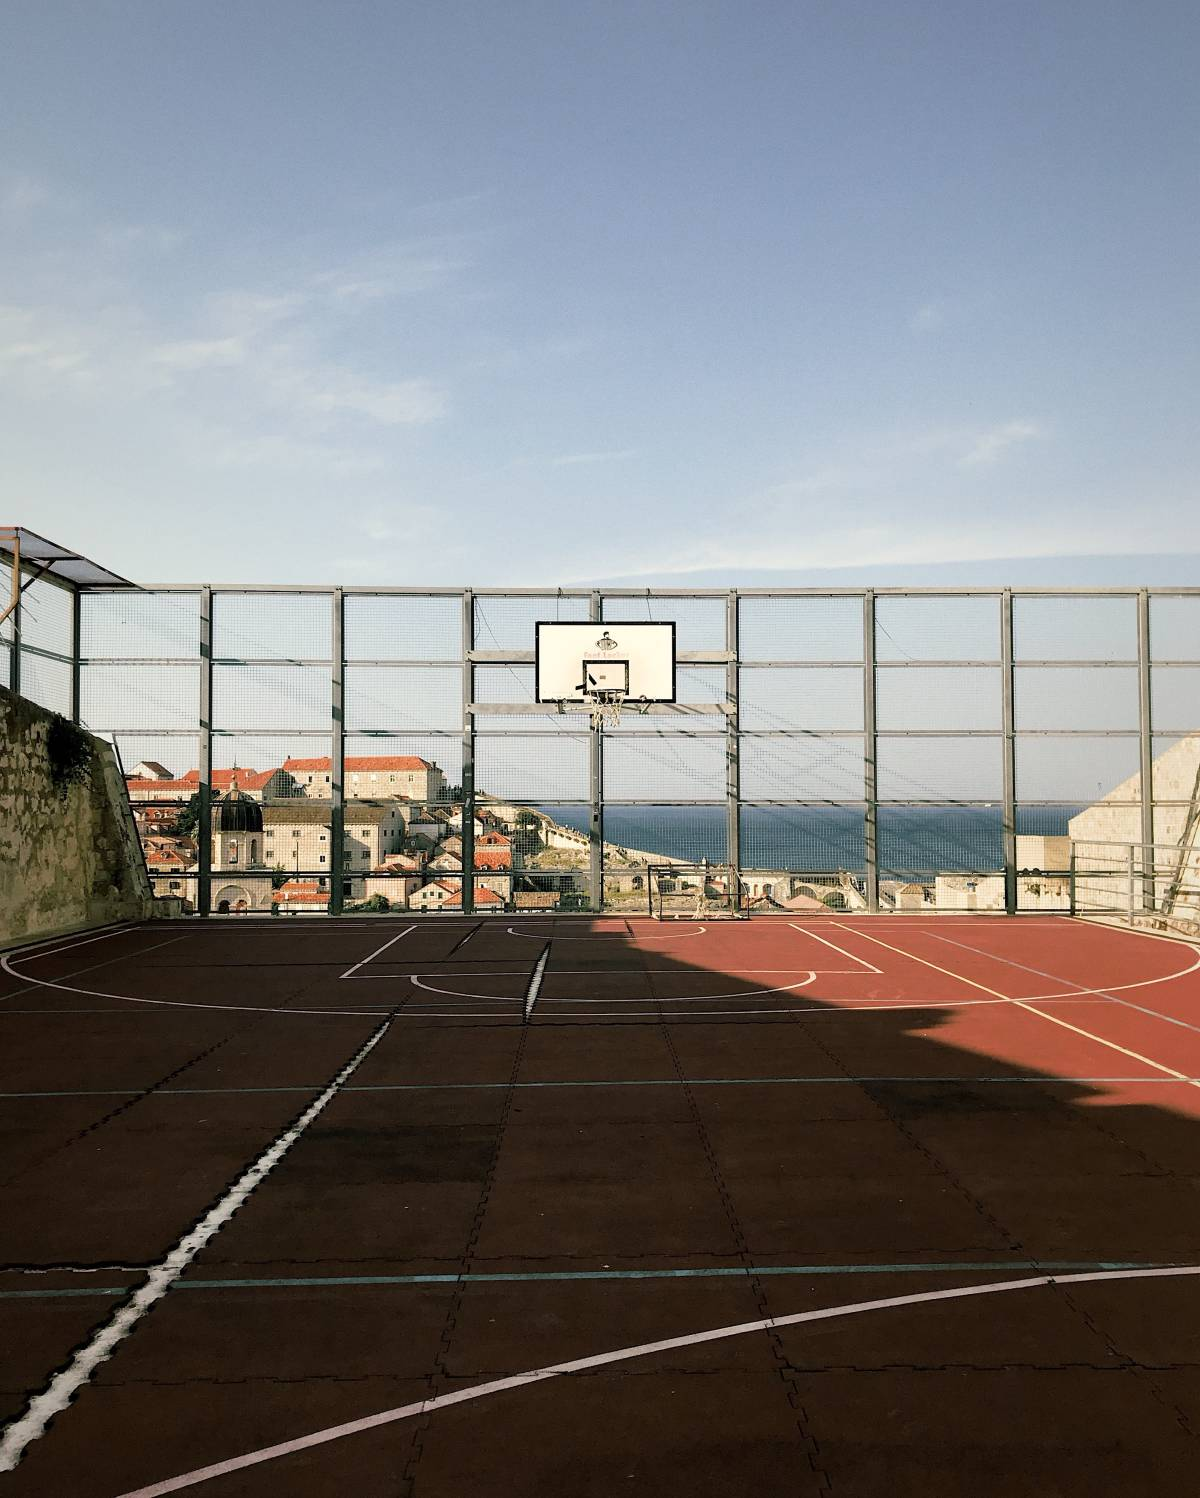 An empty basketball court during the early morning light in Dubrovnik, Croatia.